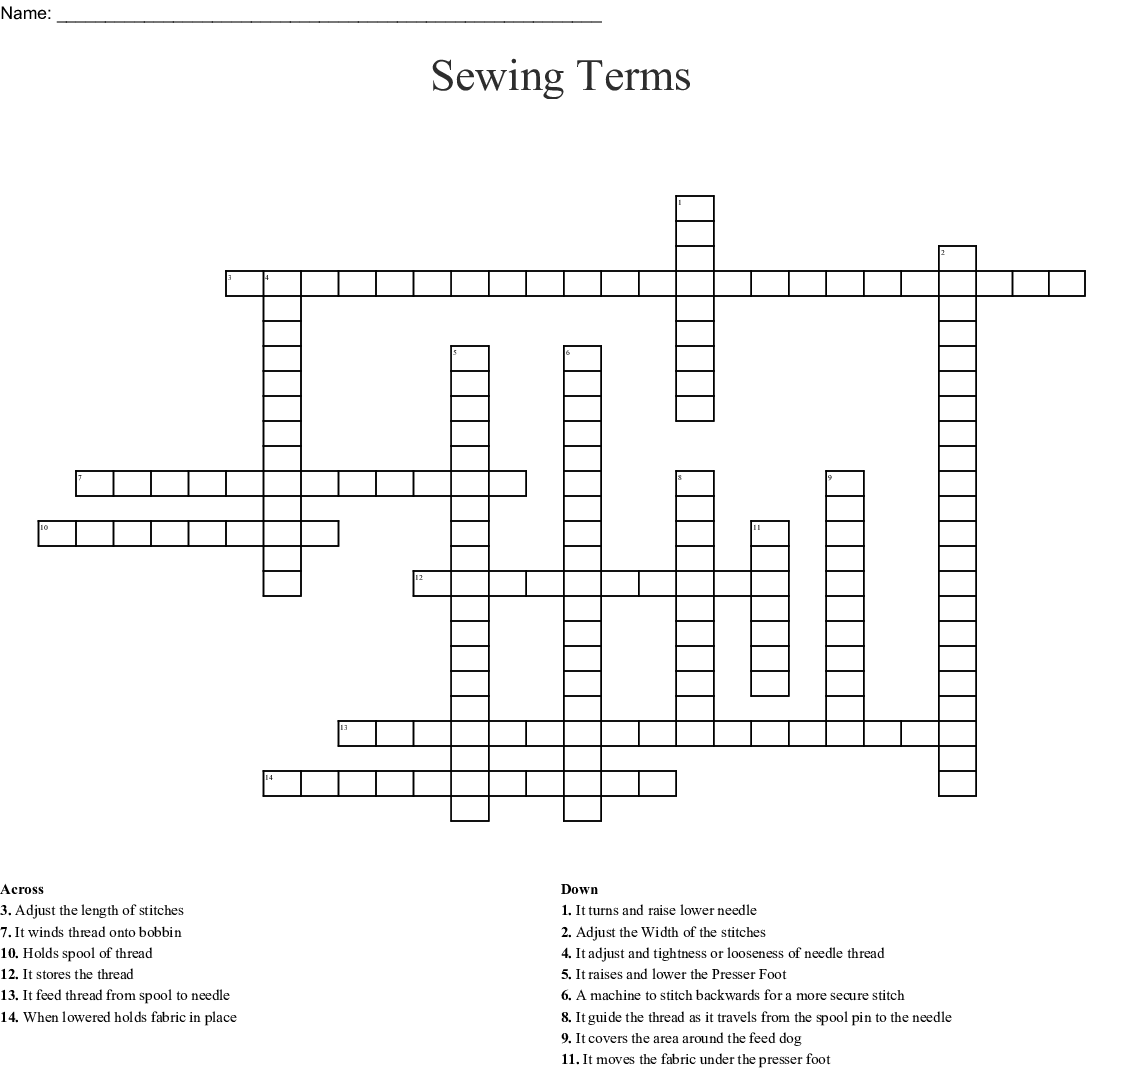 Sewing Machine Parts Crossword Puzzle Answers